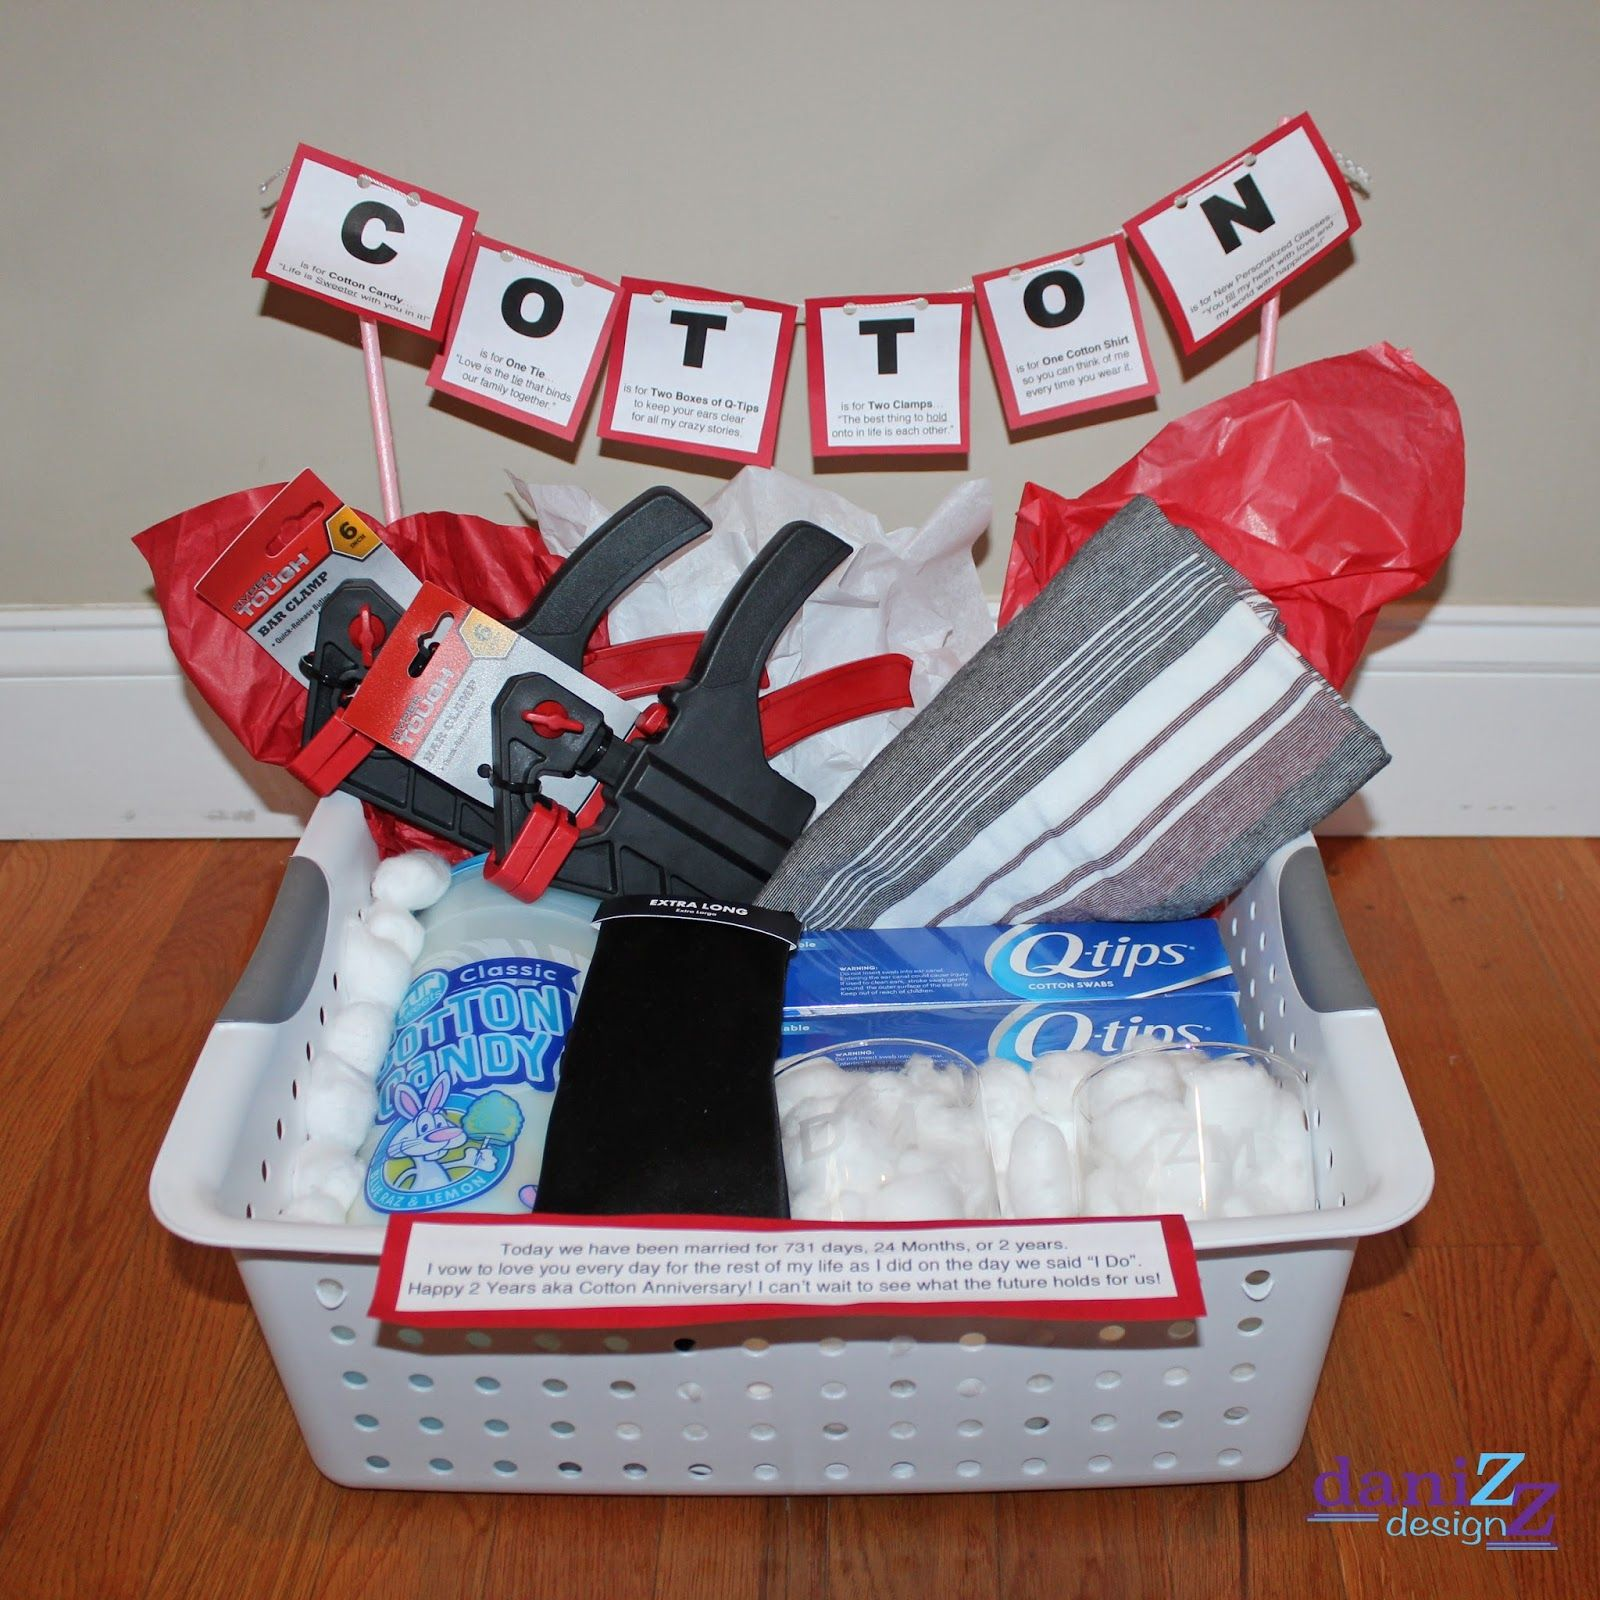 Cotton Wedding Gift: Cotton Anniversary Gift Basket Plus Several More Gift